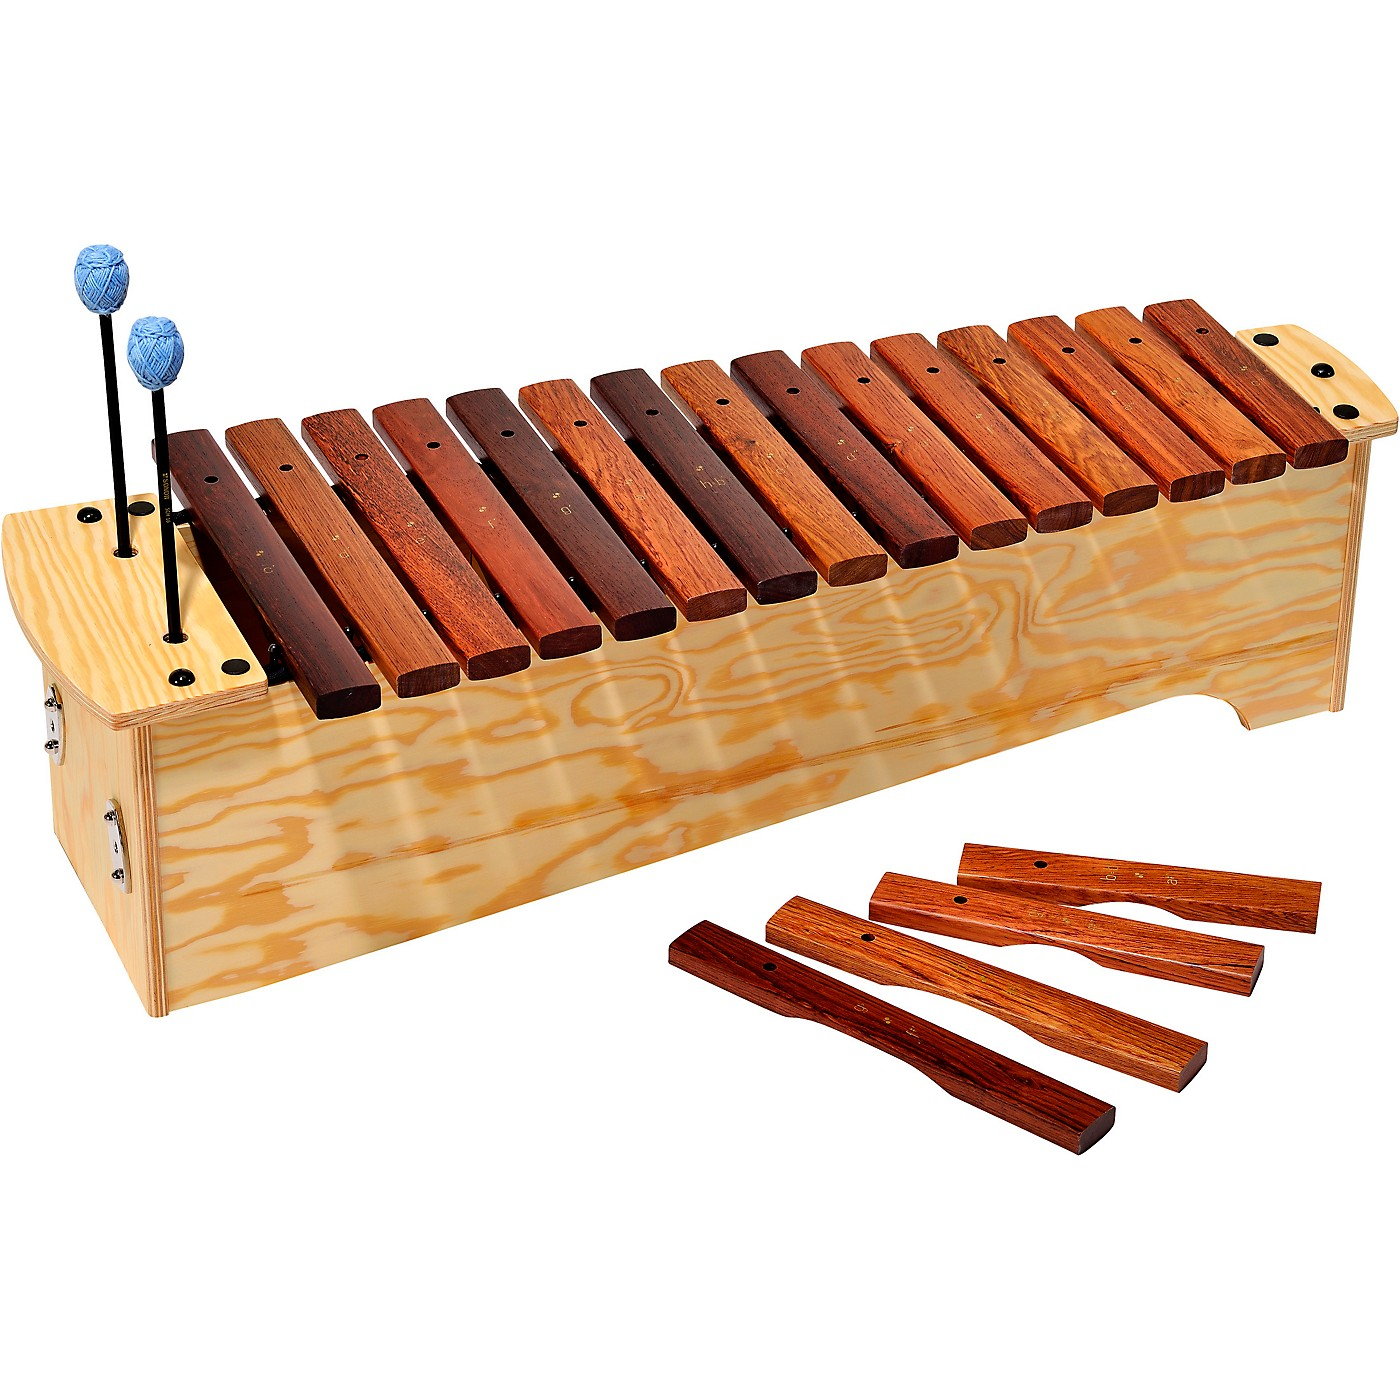 Sonor Orff Rosewood Tenor-Alto Xylophone thumbnail